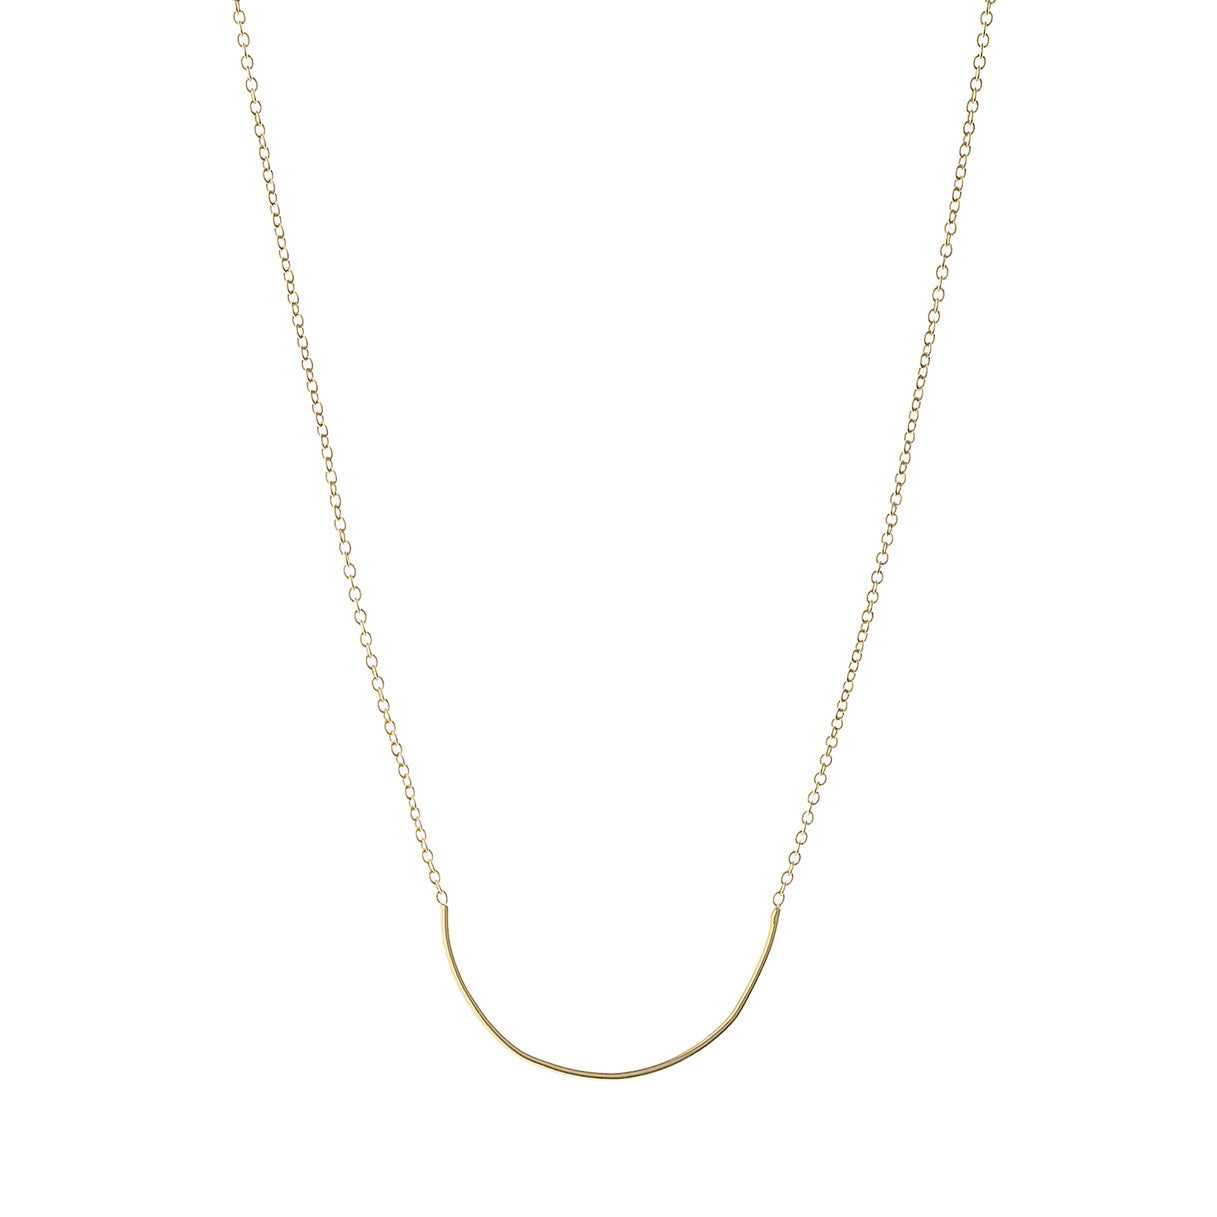 Aurore Havenne Gold Plated Silver Unity Circle Necklace minimalist jewellery bijou simple designer